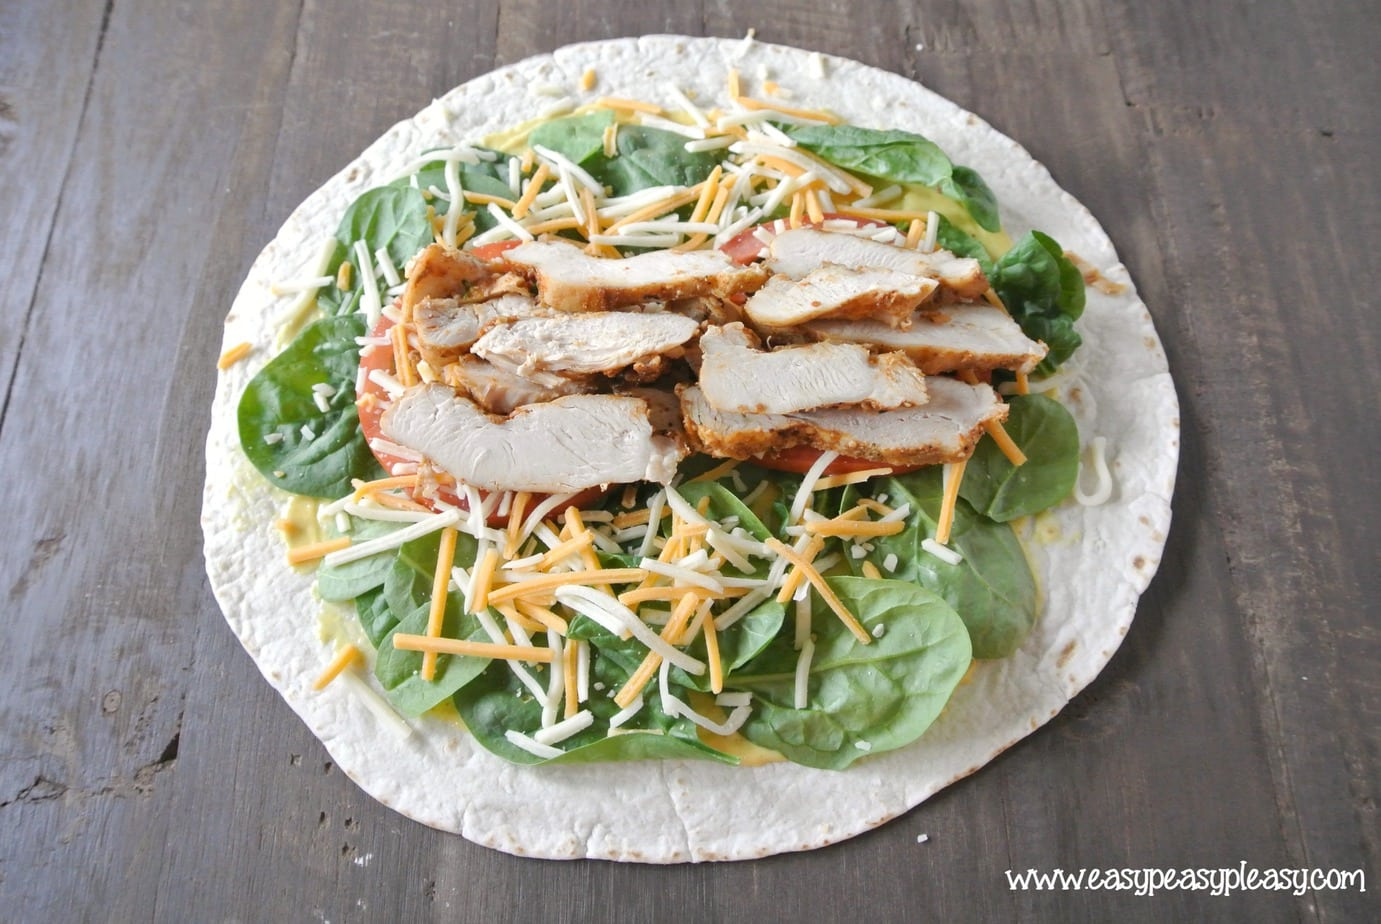 How to make a picture perfect grilled chicken wrap. No wrap is complete without the meat!